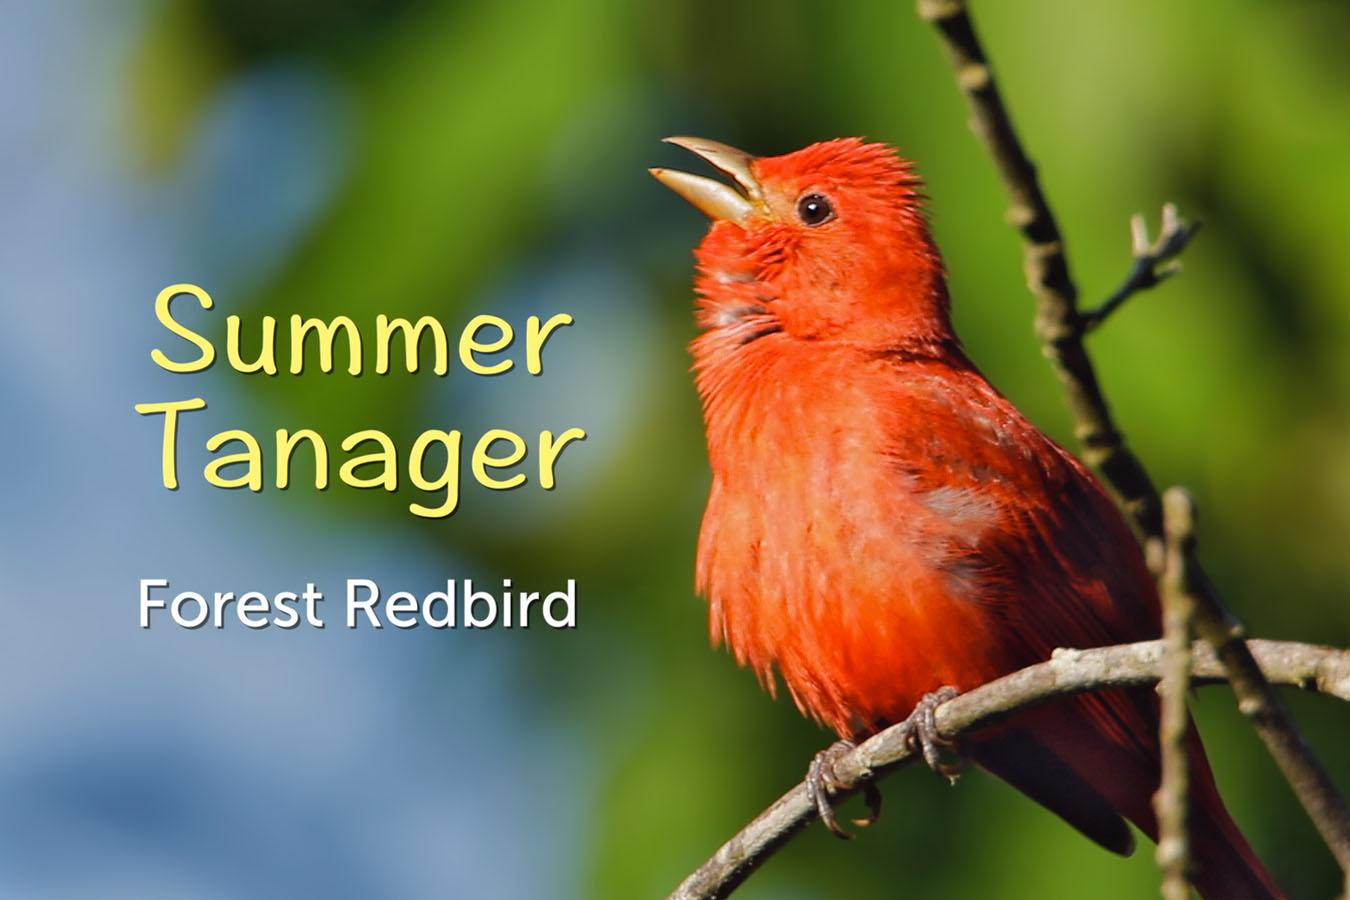 Summer Tanager - featured image © Lang Elliott